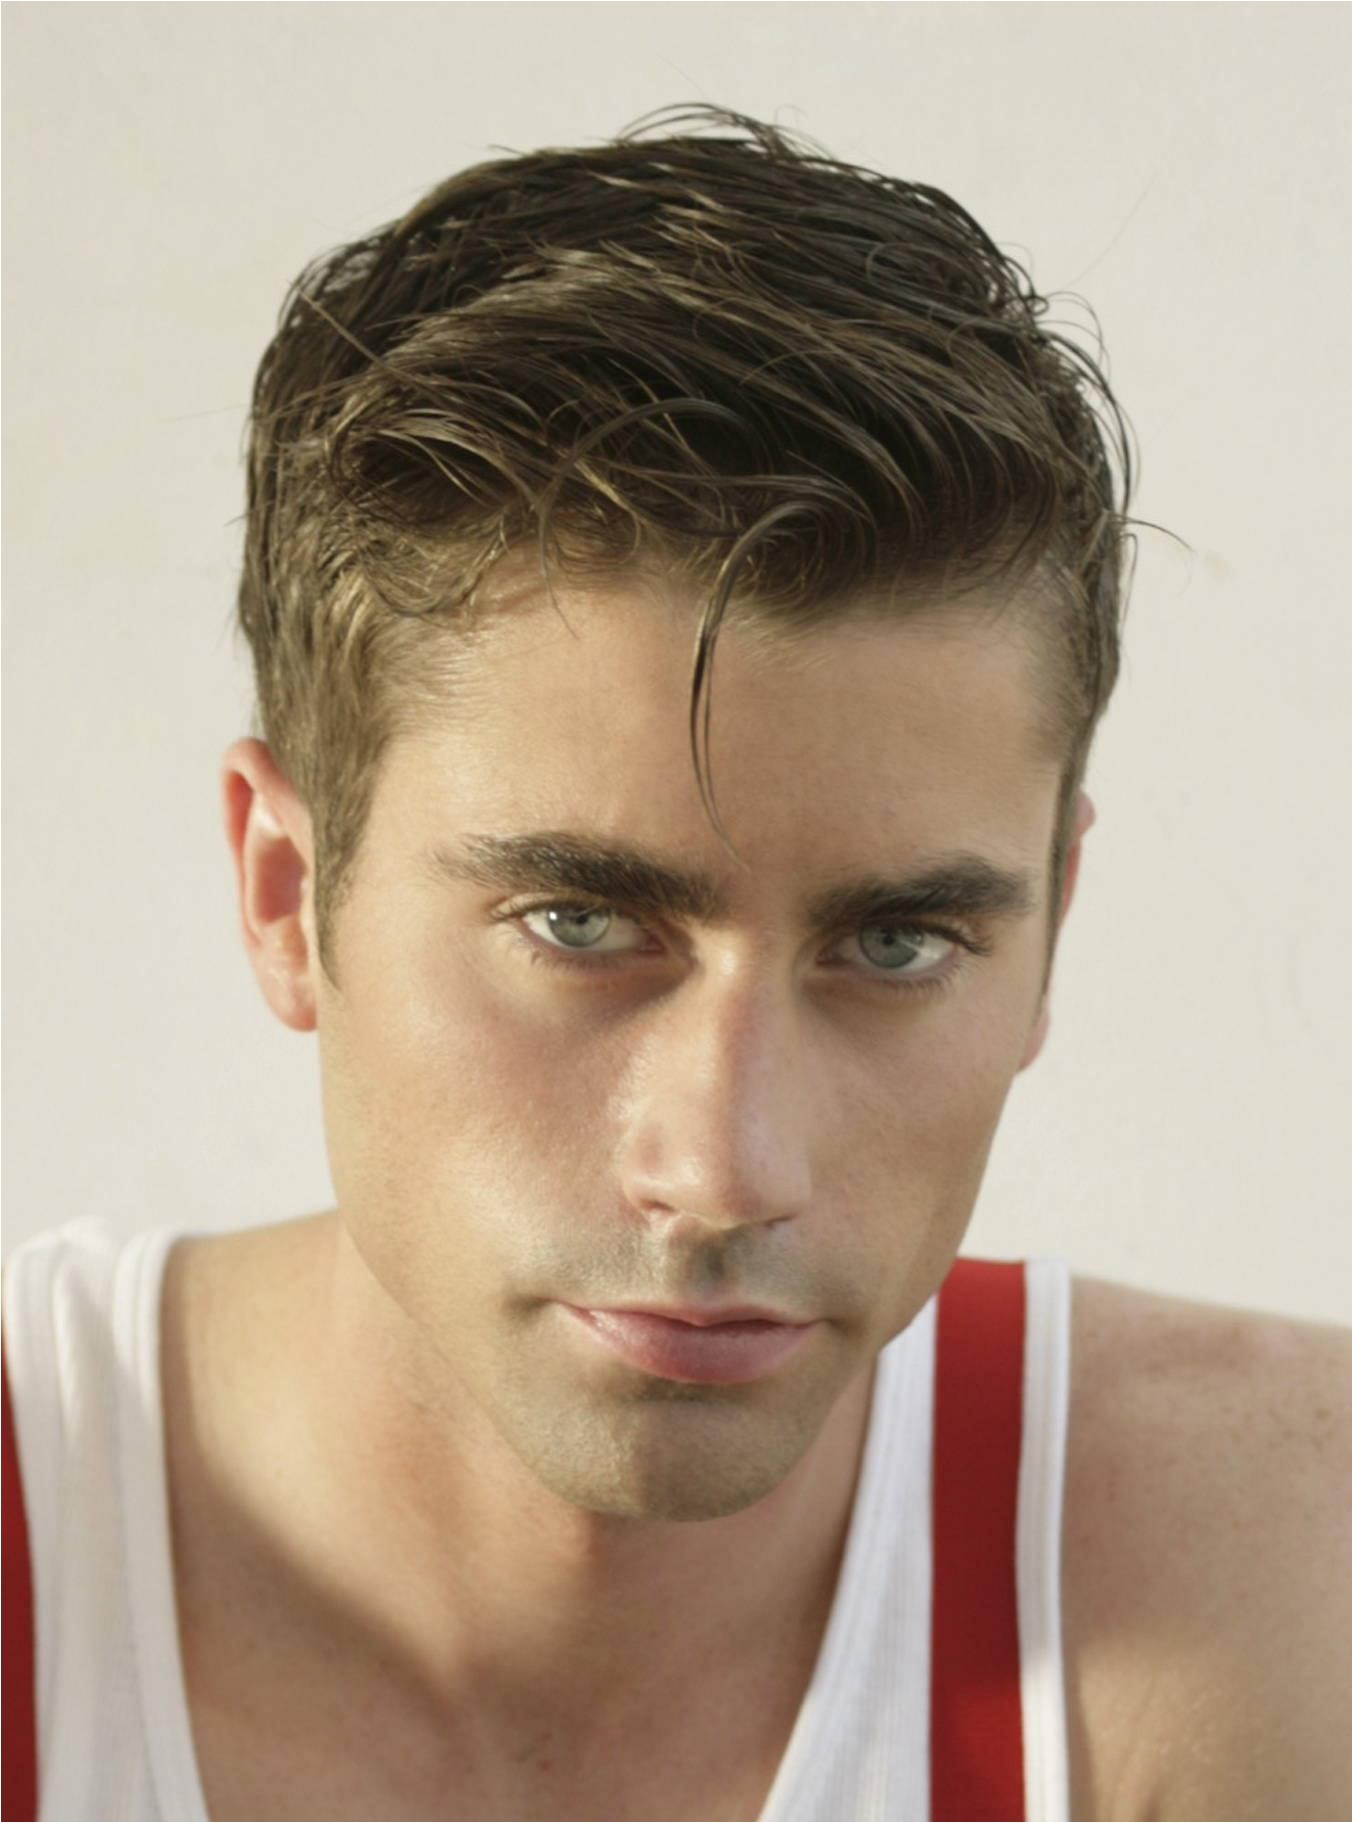 Bestirstyle For Teenage Guys Good With Curlyirircut Thick Straight Short Hairstyles Good Hairstyle For Guys